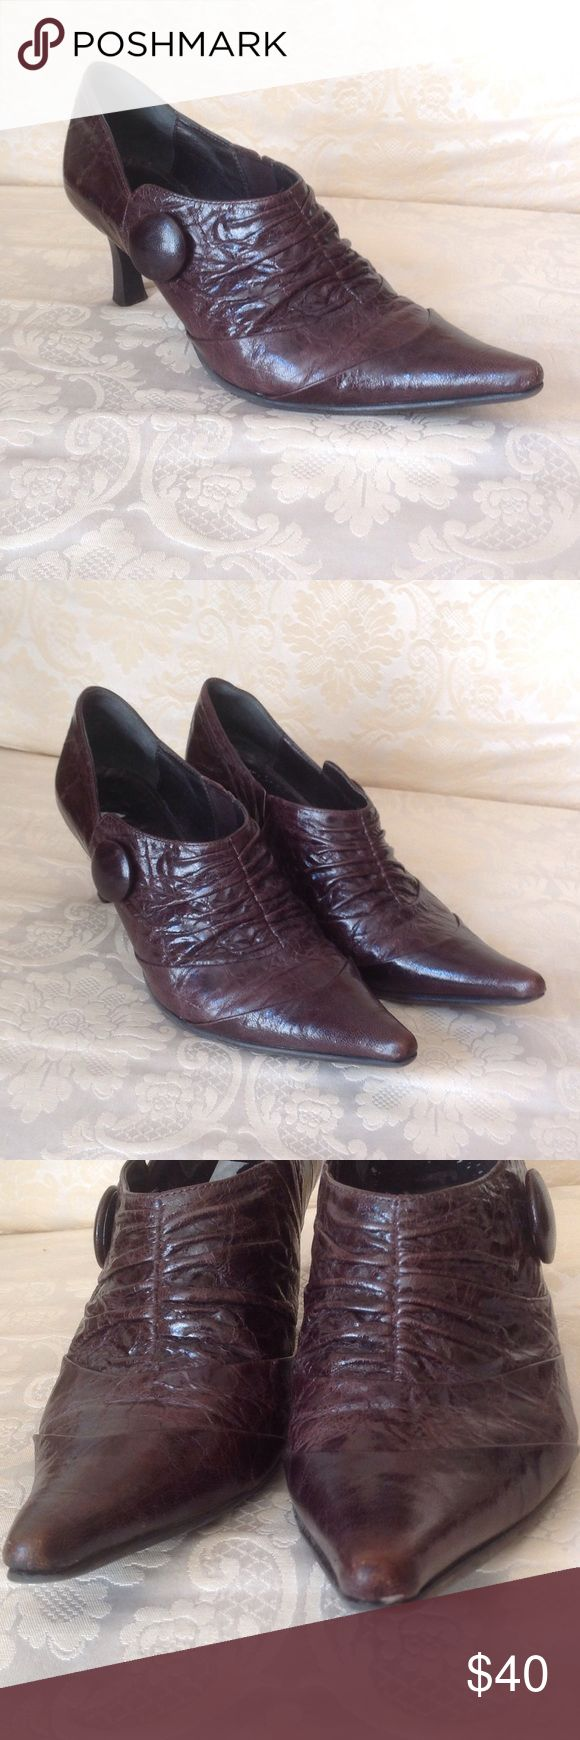 Fidji dark brown shoes In lightly worn condition. Leather looks great.        .            c fidji Shoes